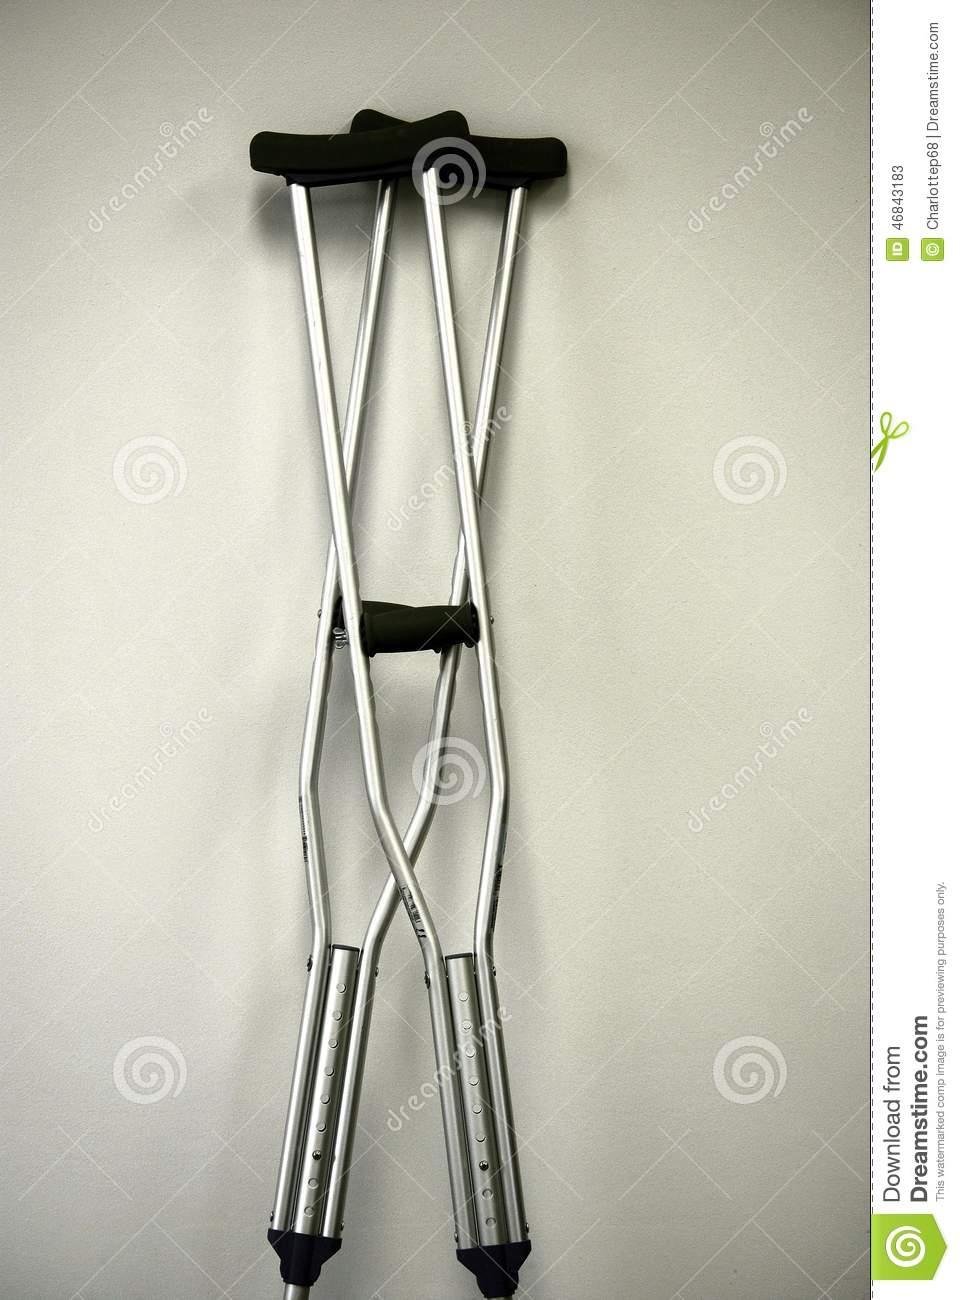 how to make crutches not hurt